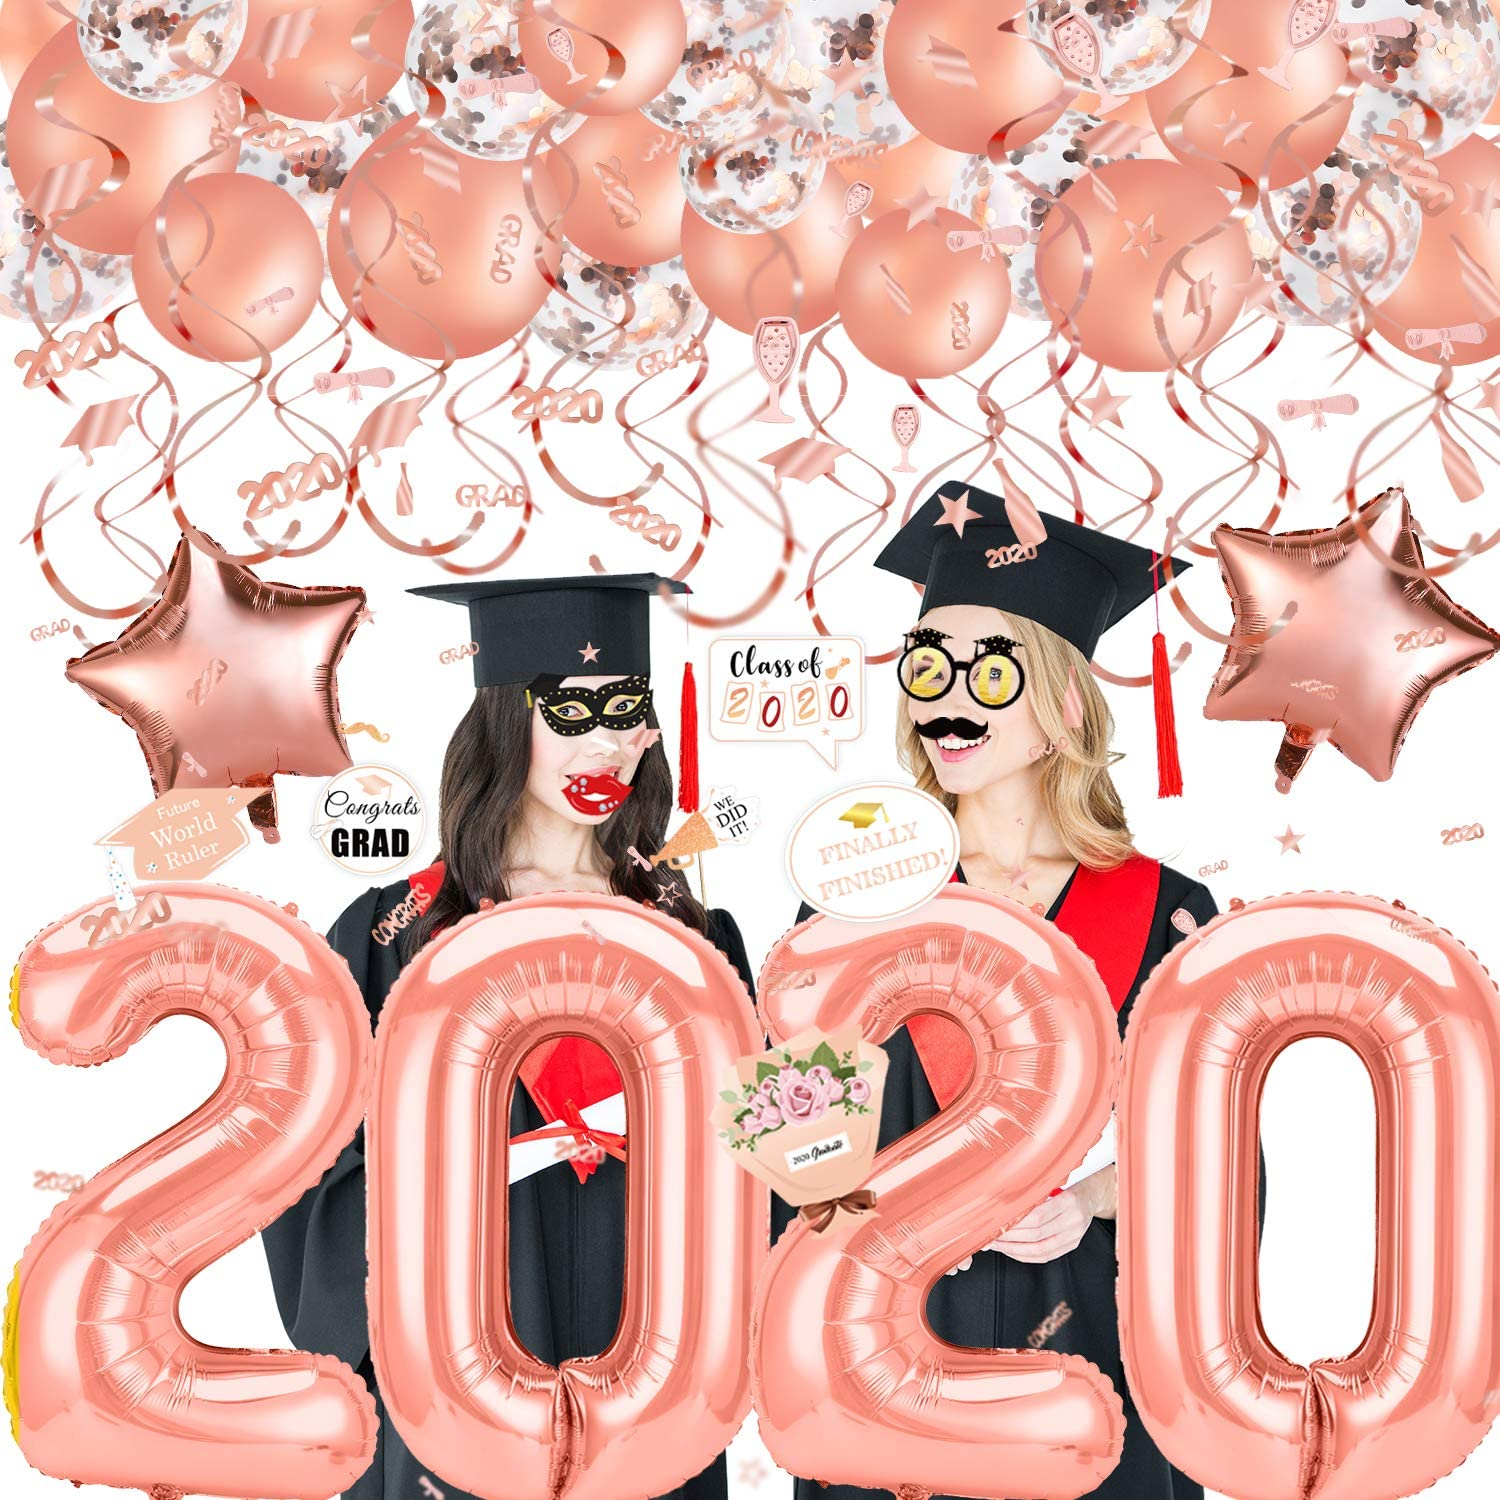 Konsait 2020 Graduation Decorations, 40Inch Number 2020 Balloons, Mylar Latex Balloon, Hanging Swirls, Confetti,Photo Booth Props for Rose Gold Grad Graduation Party Decorations Favors Supplies